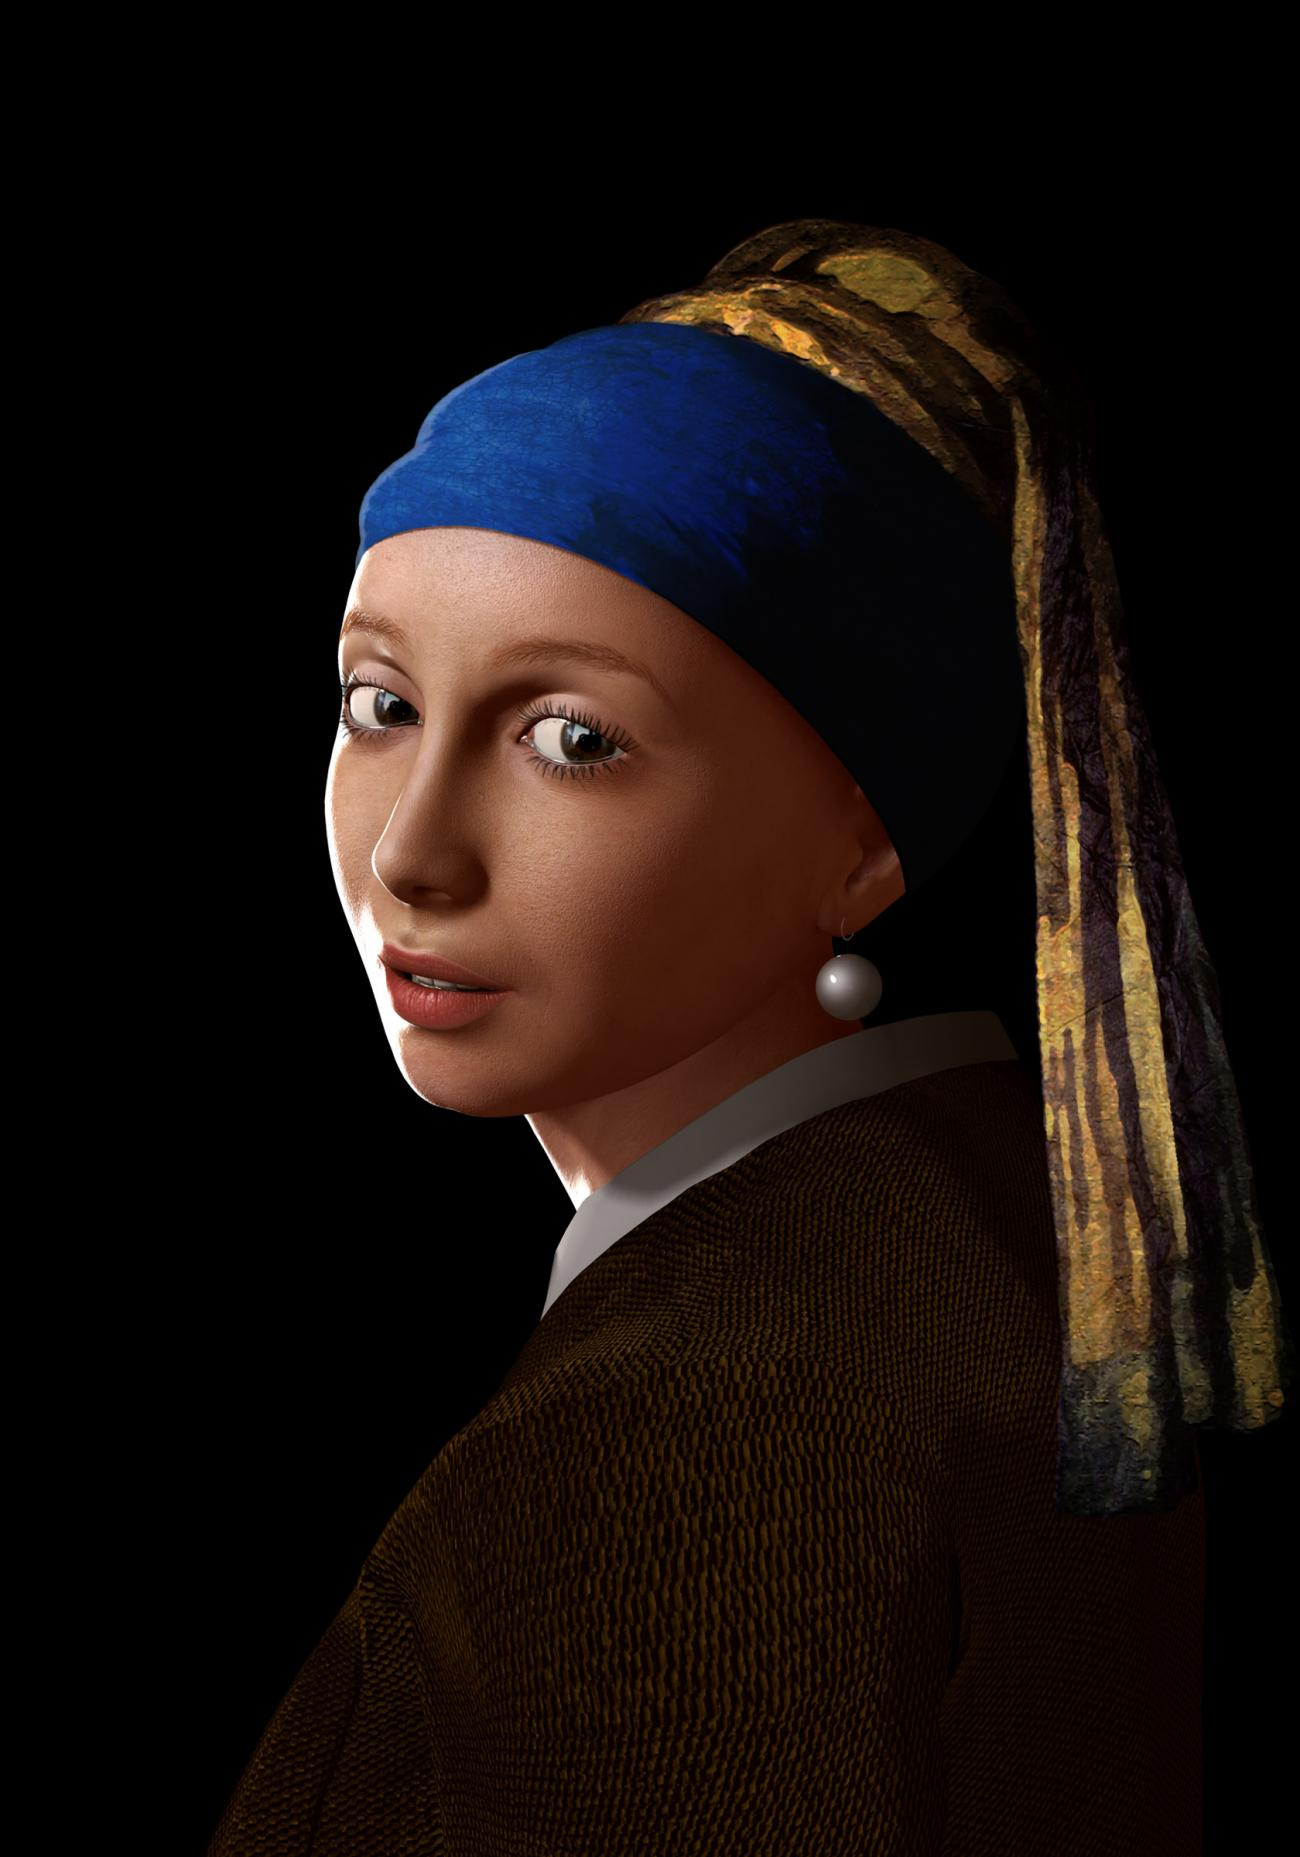 The Girl With The Pearl Earring by Josel007